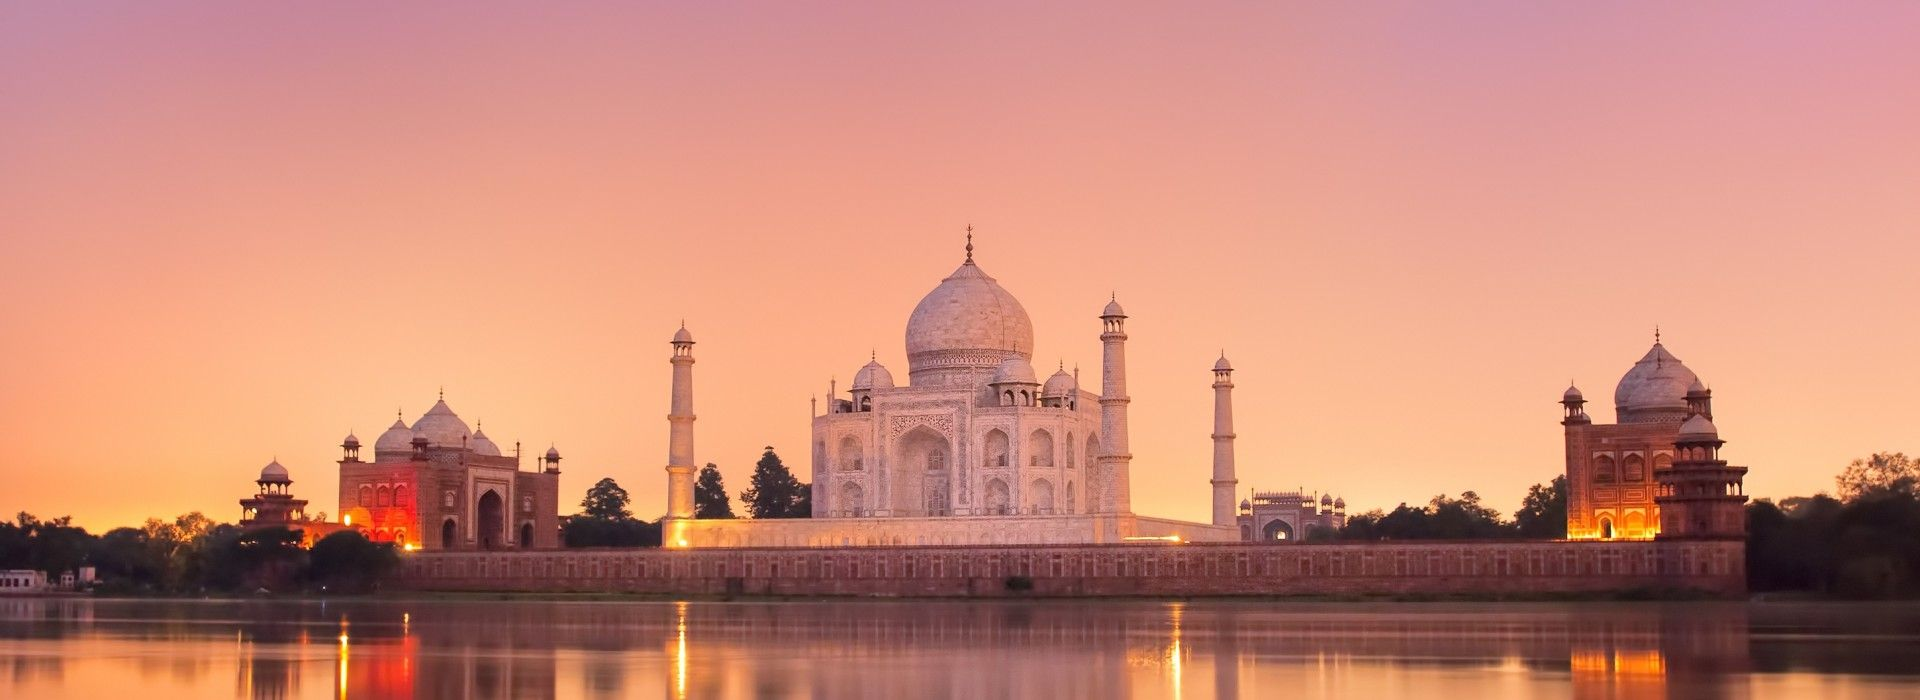 Food, wine, events and nightlife Tours in New Delhi